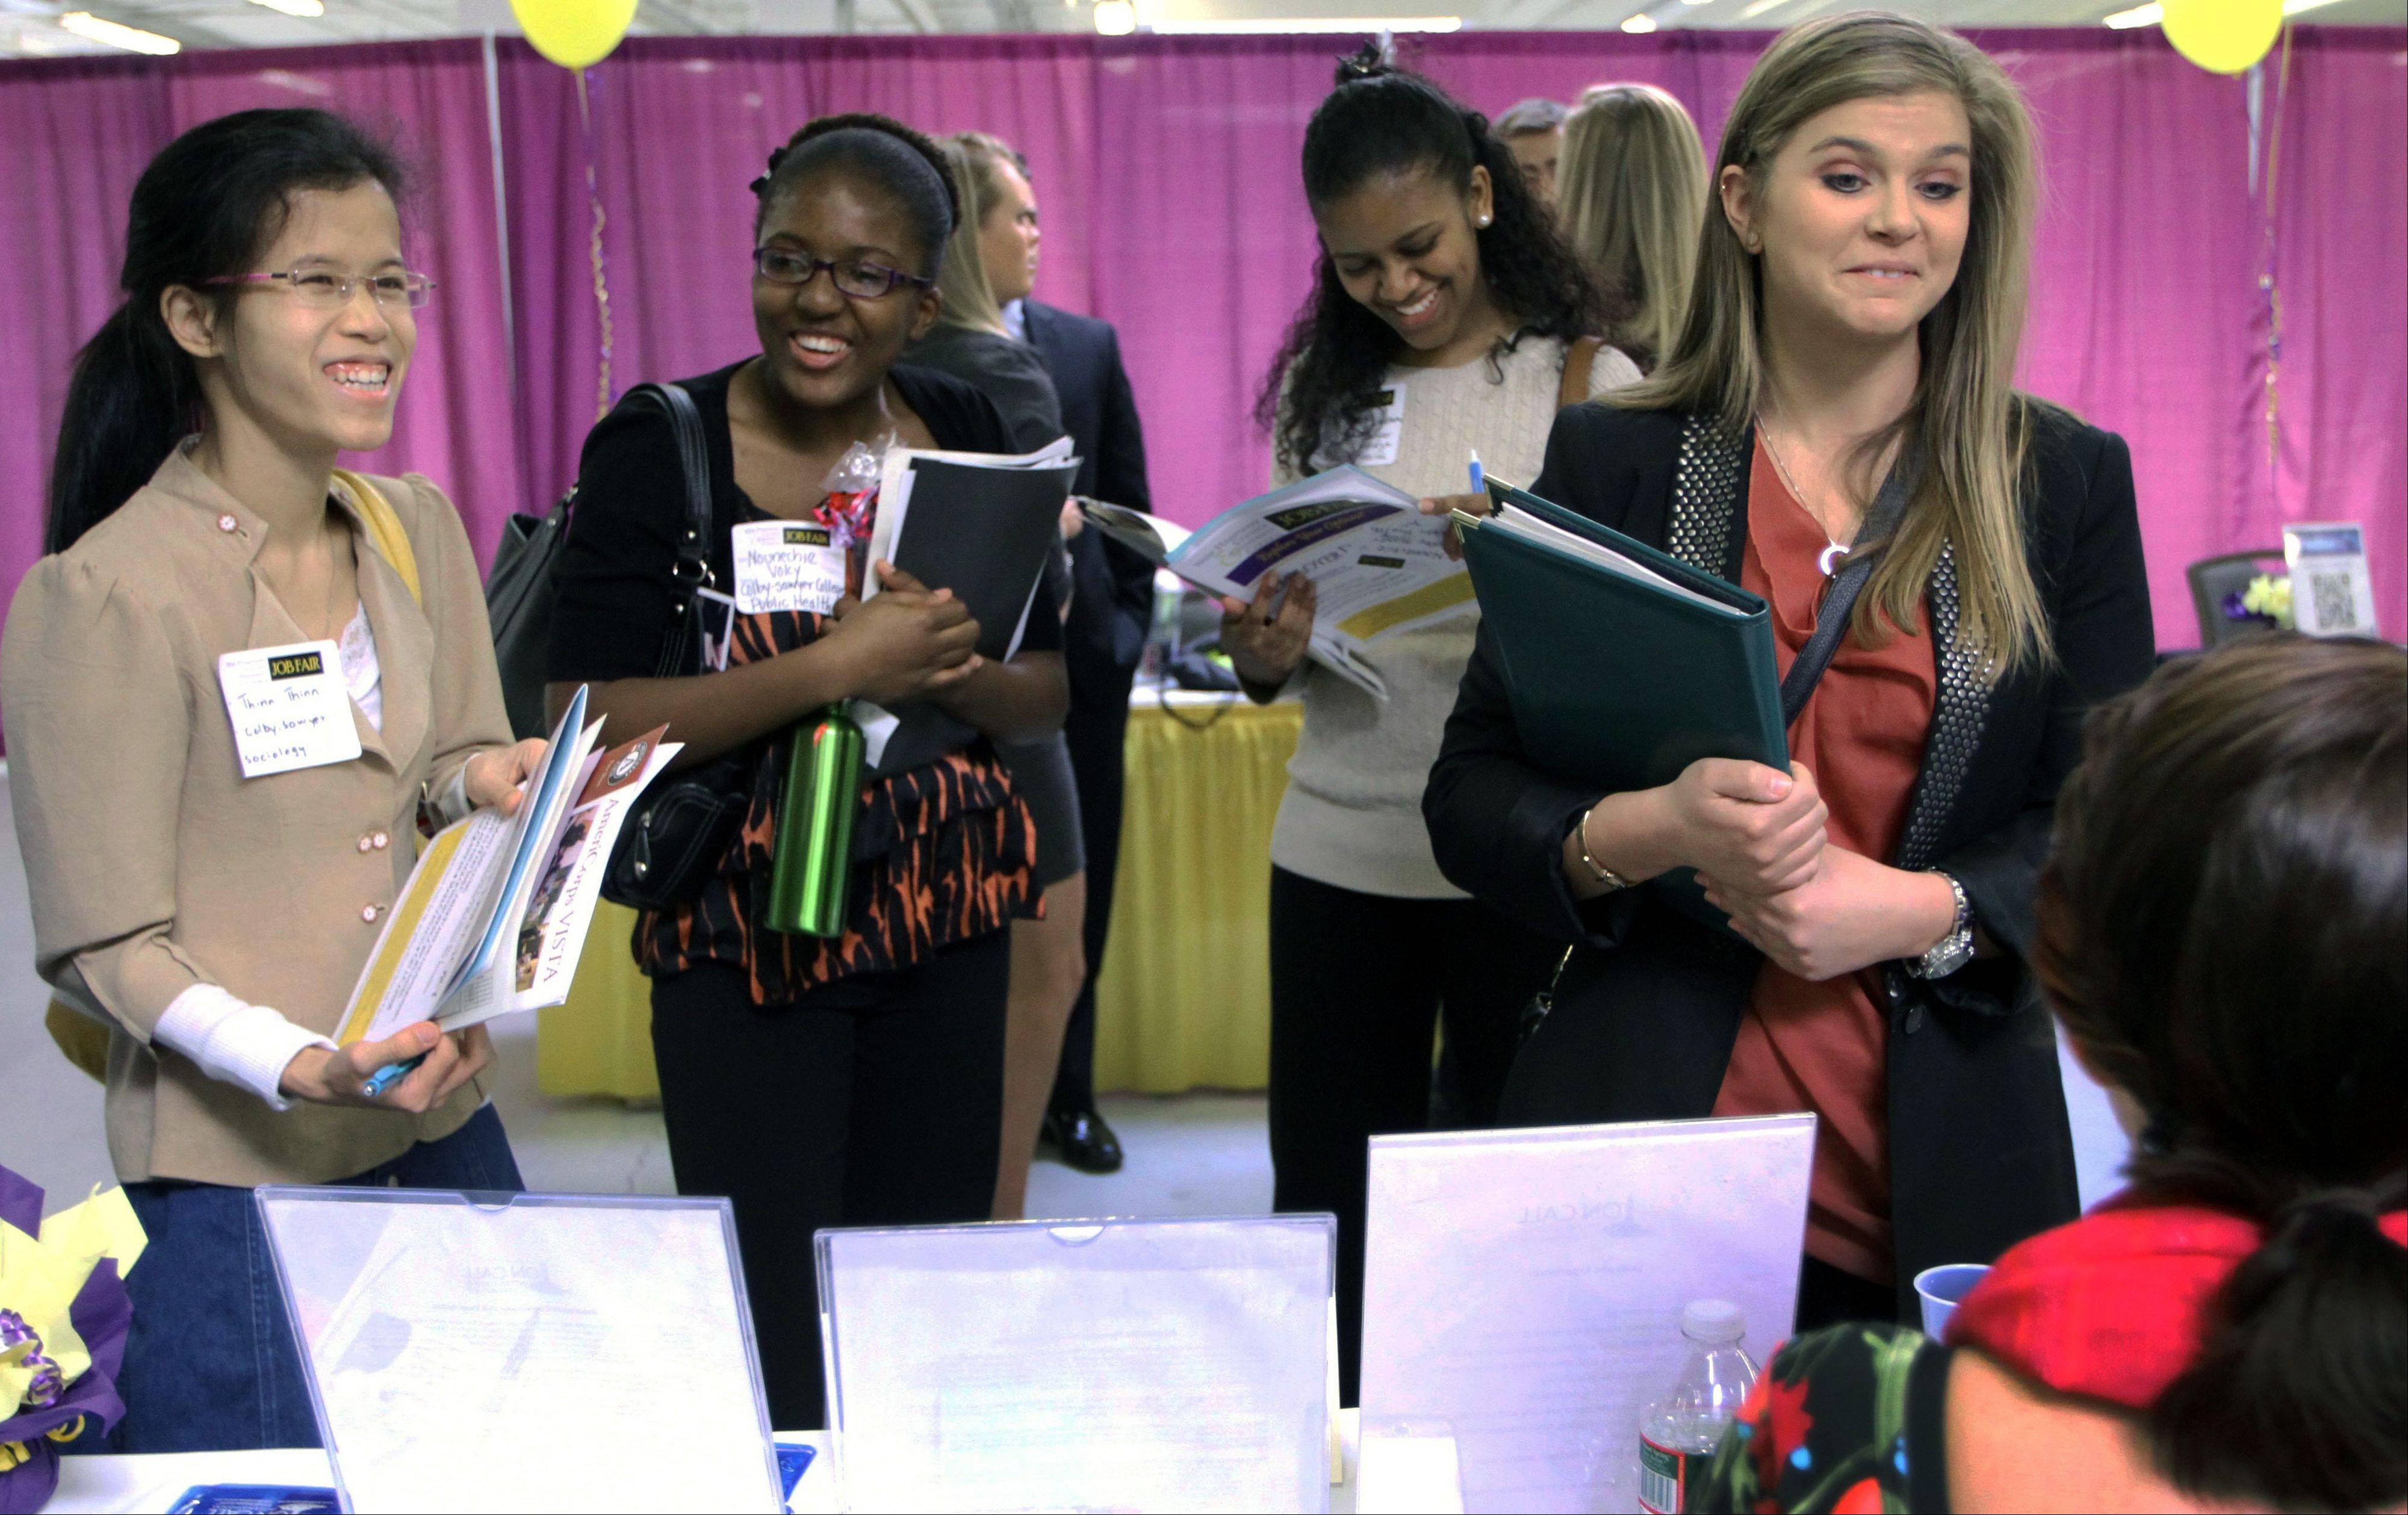 Women attend a job fair for college students in Manchester, N.H., in April 2012. A report released Thursday shows U.S. women have recovered all the jobs they lost during the Great Recession.